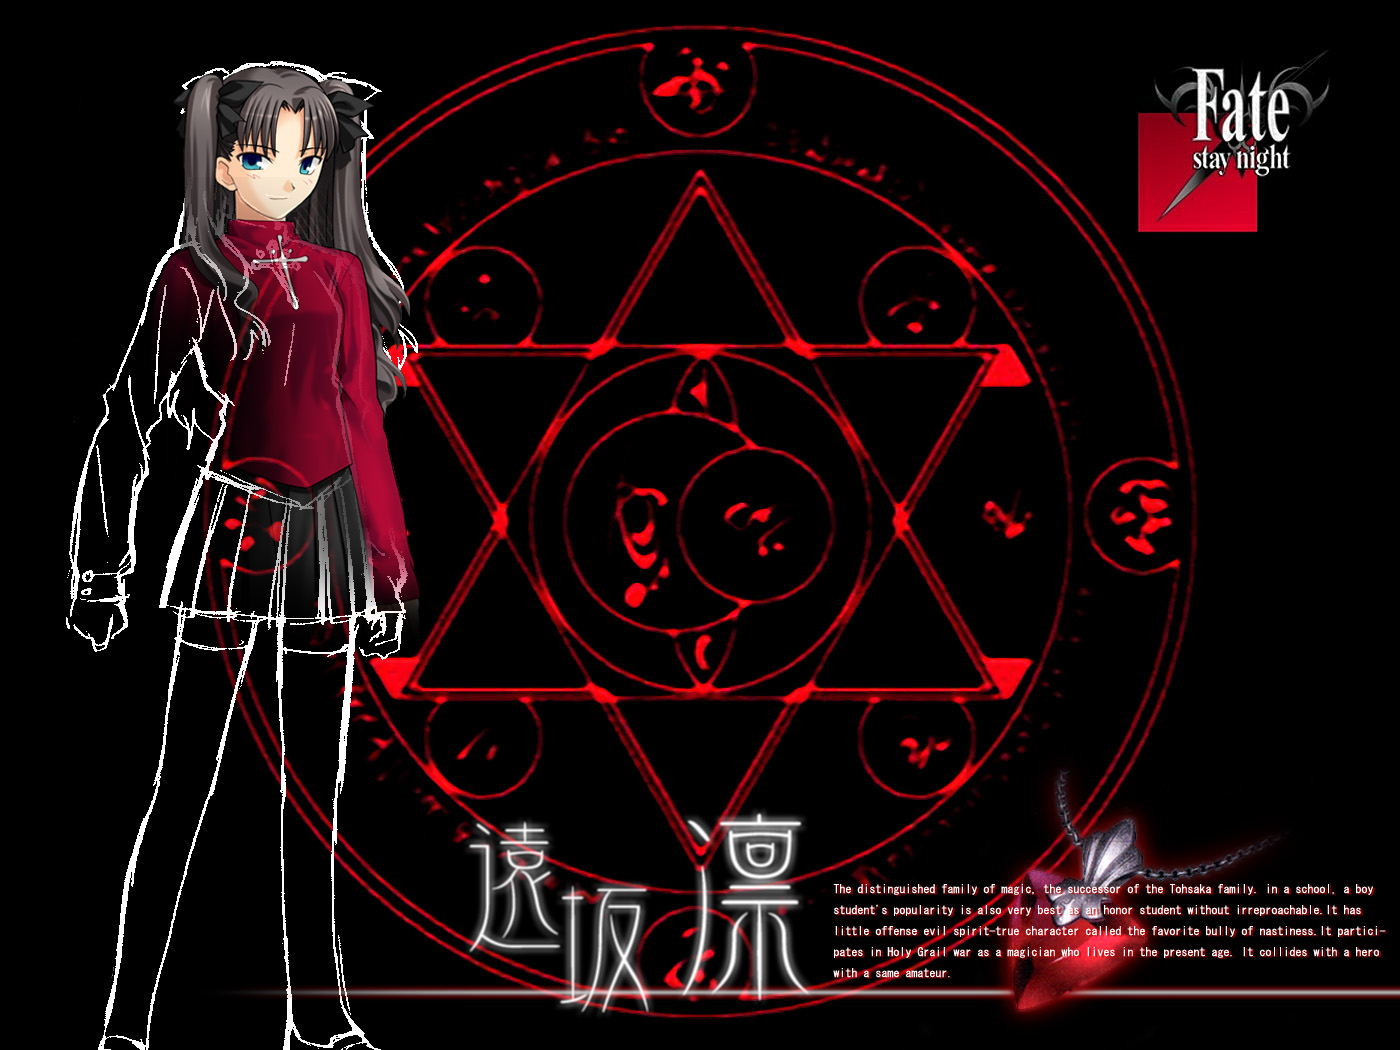 Hexagram star symbol page 2 of 3 zerochan anime image board rin tohsaka download tohsaka rin image biocorpaavc